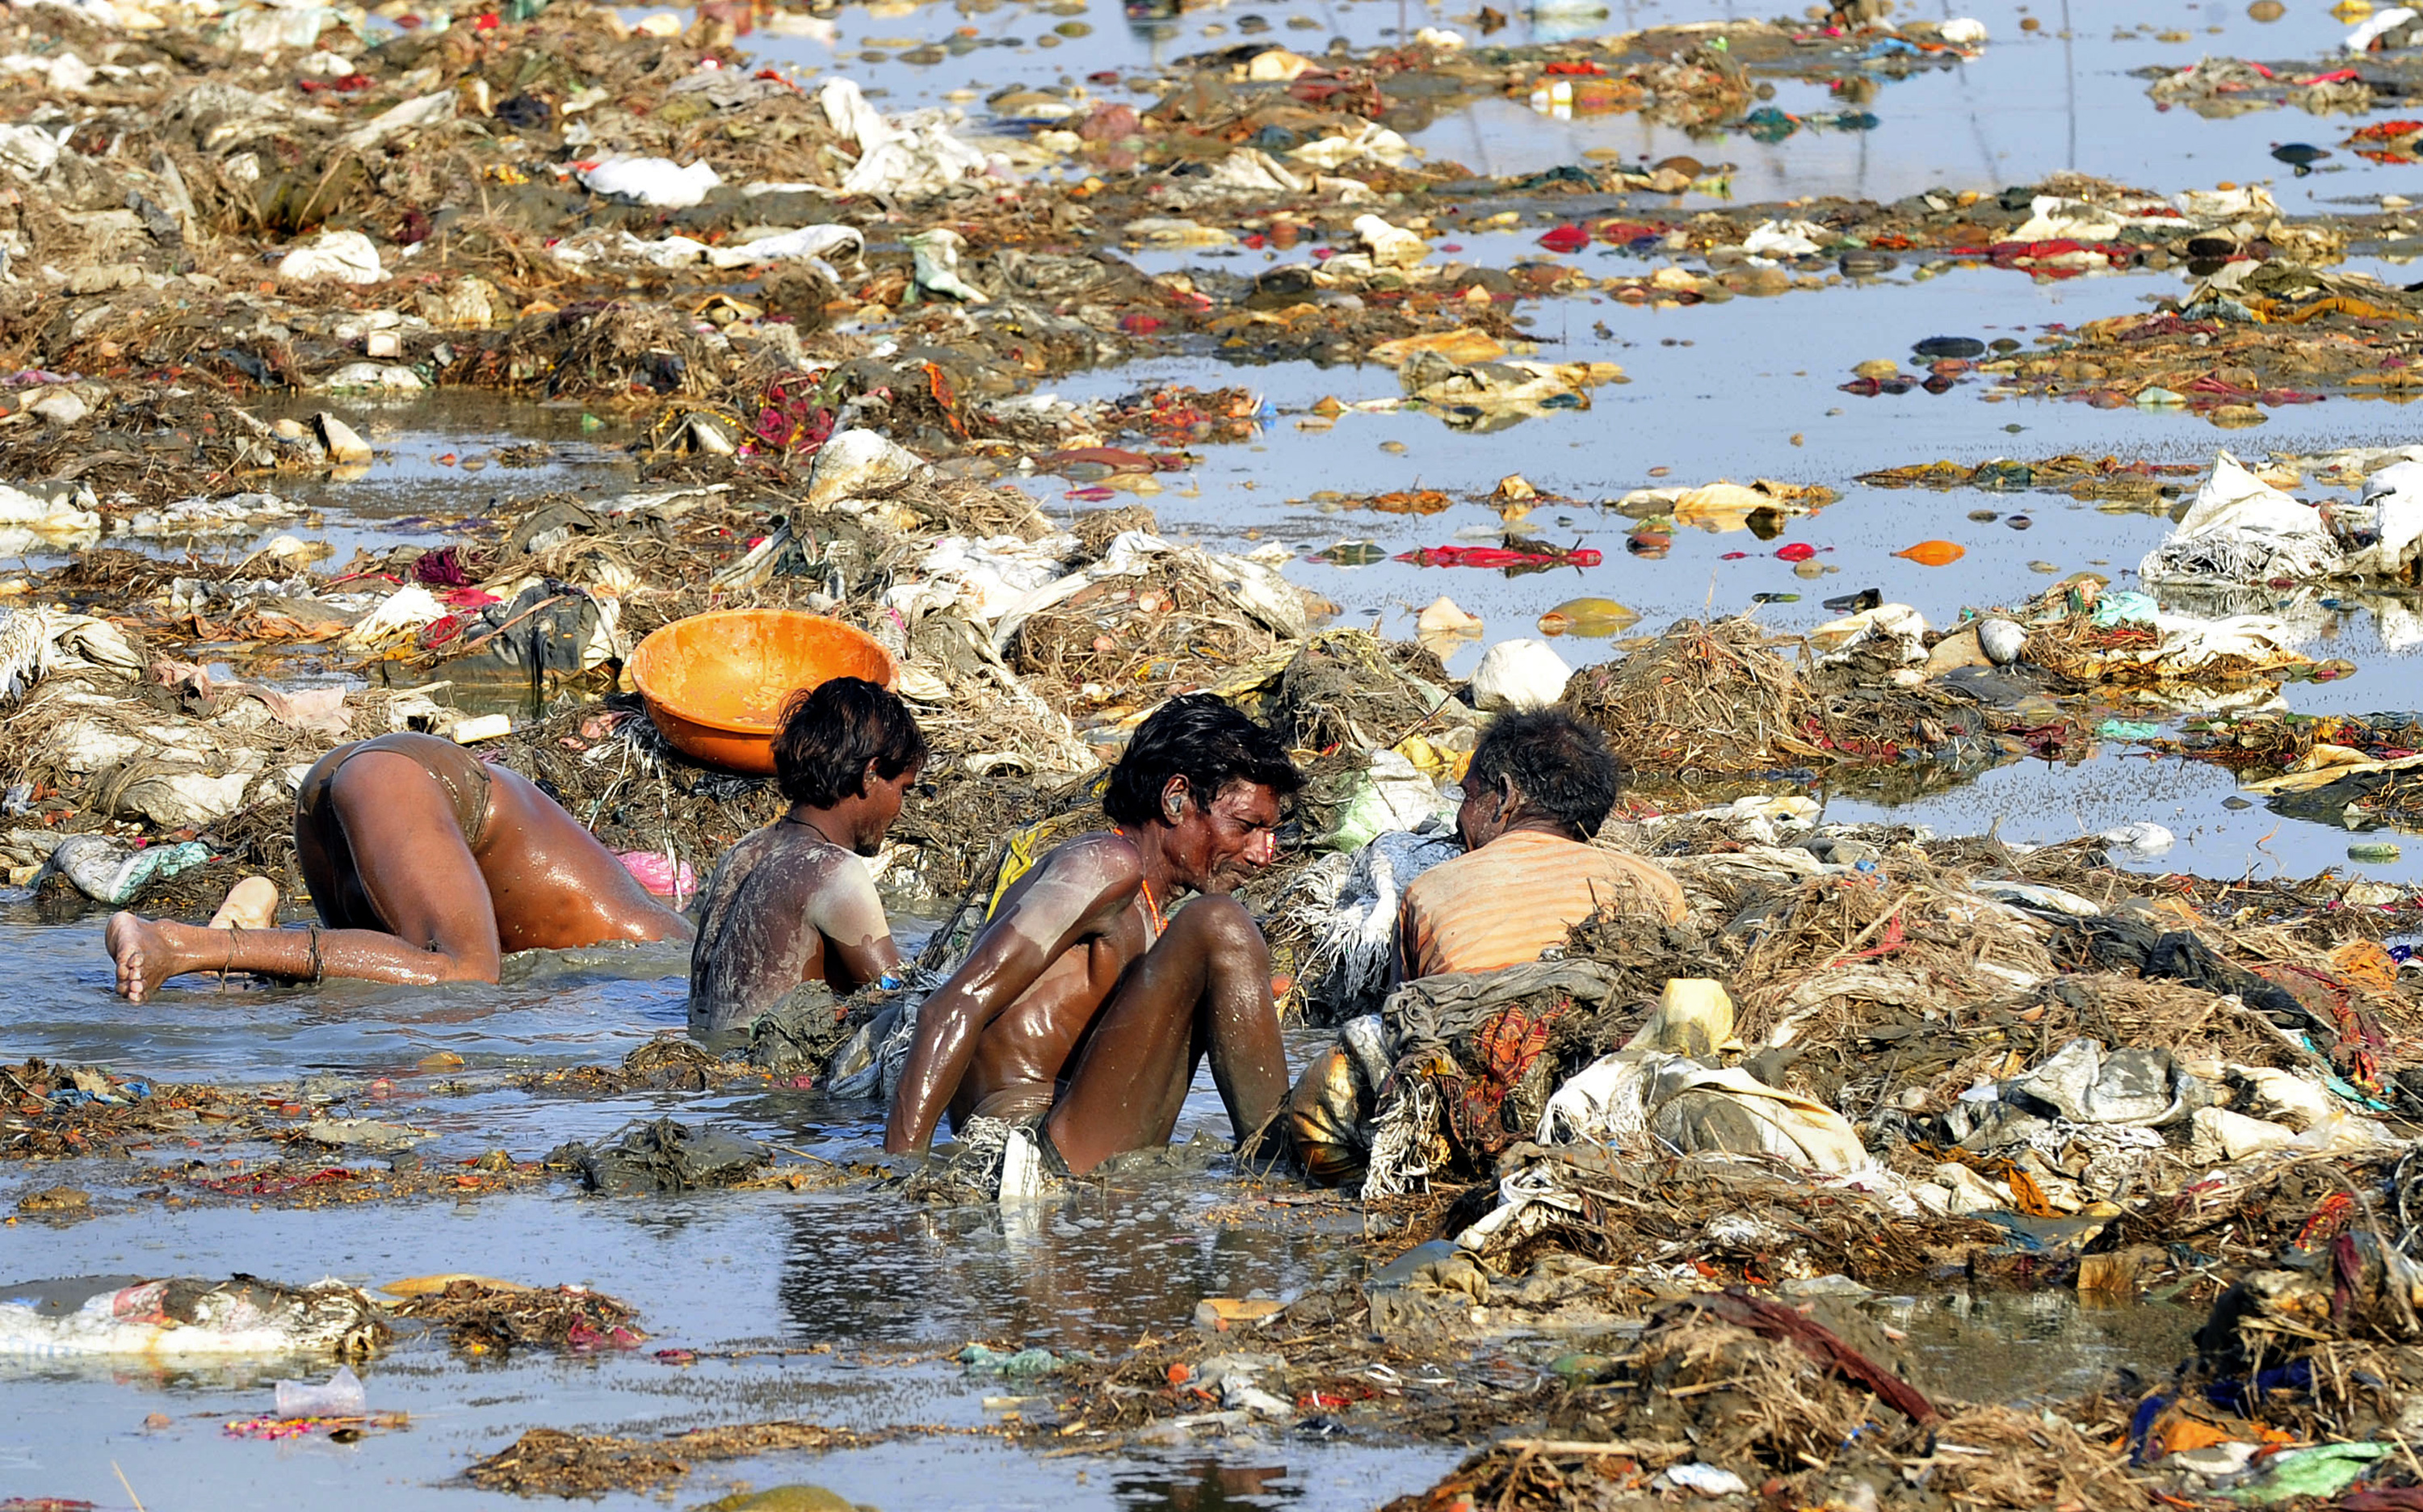 I need info about industry around the Ganges River?